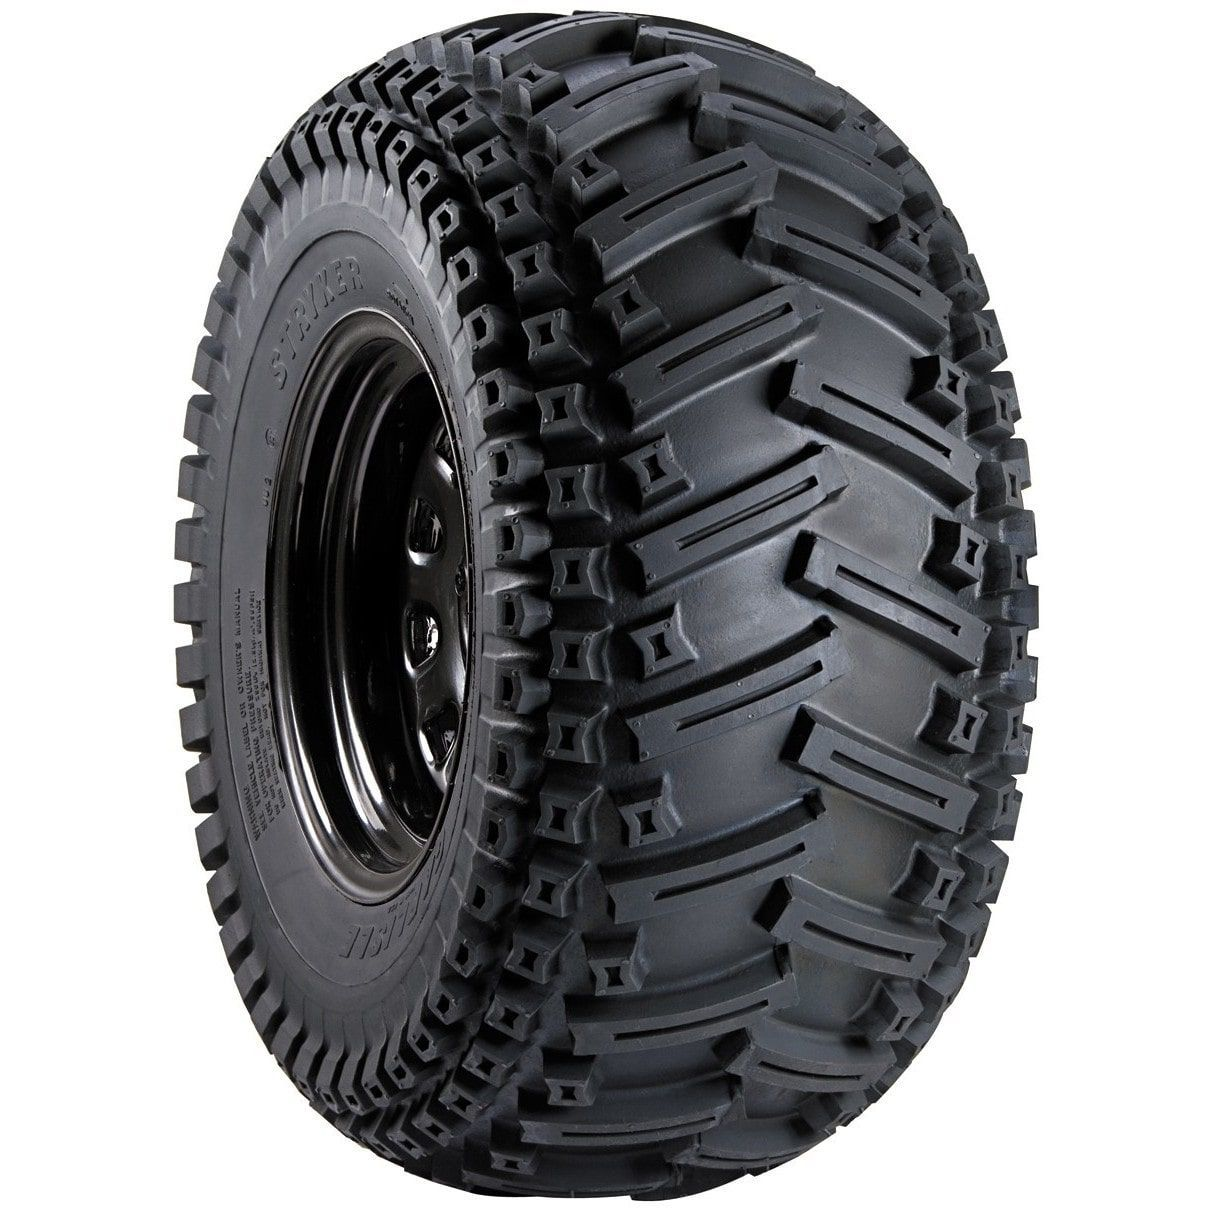 ATV Tires 6ply Pair of GBC Dirt Tamer 2 27x9-12